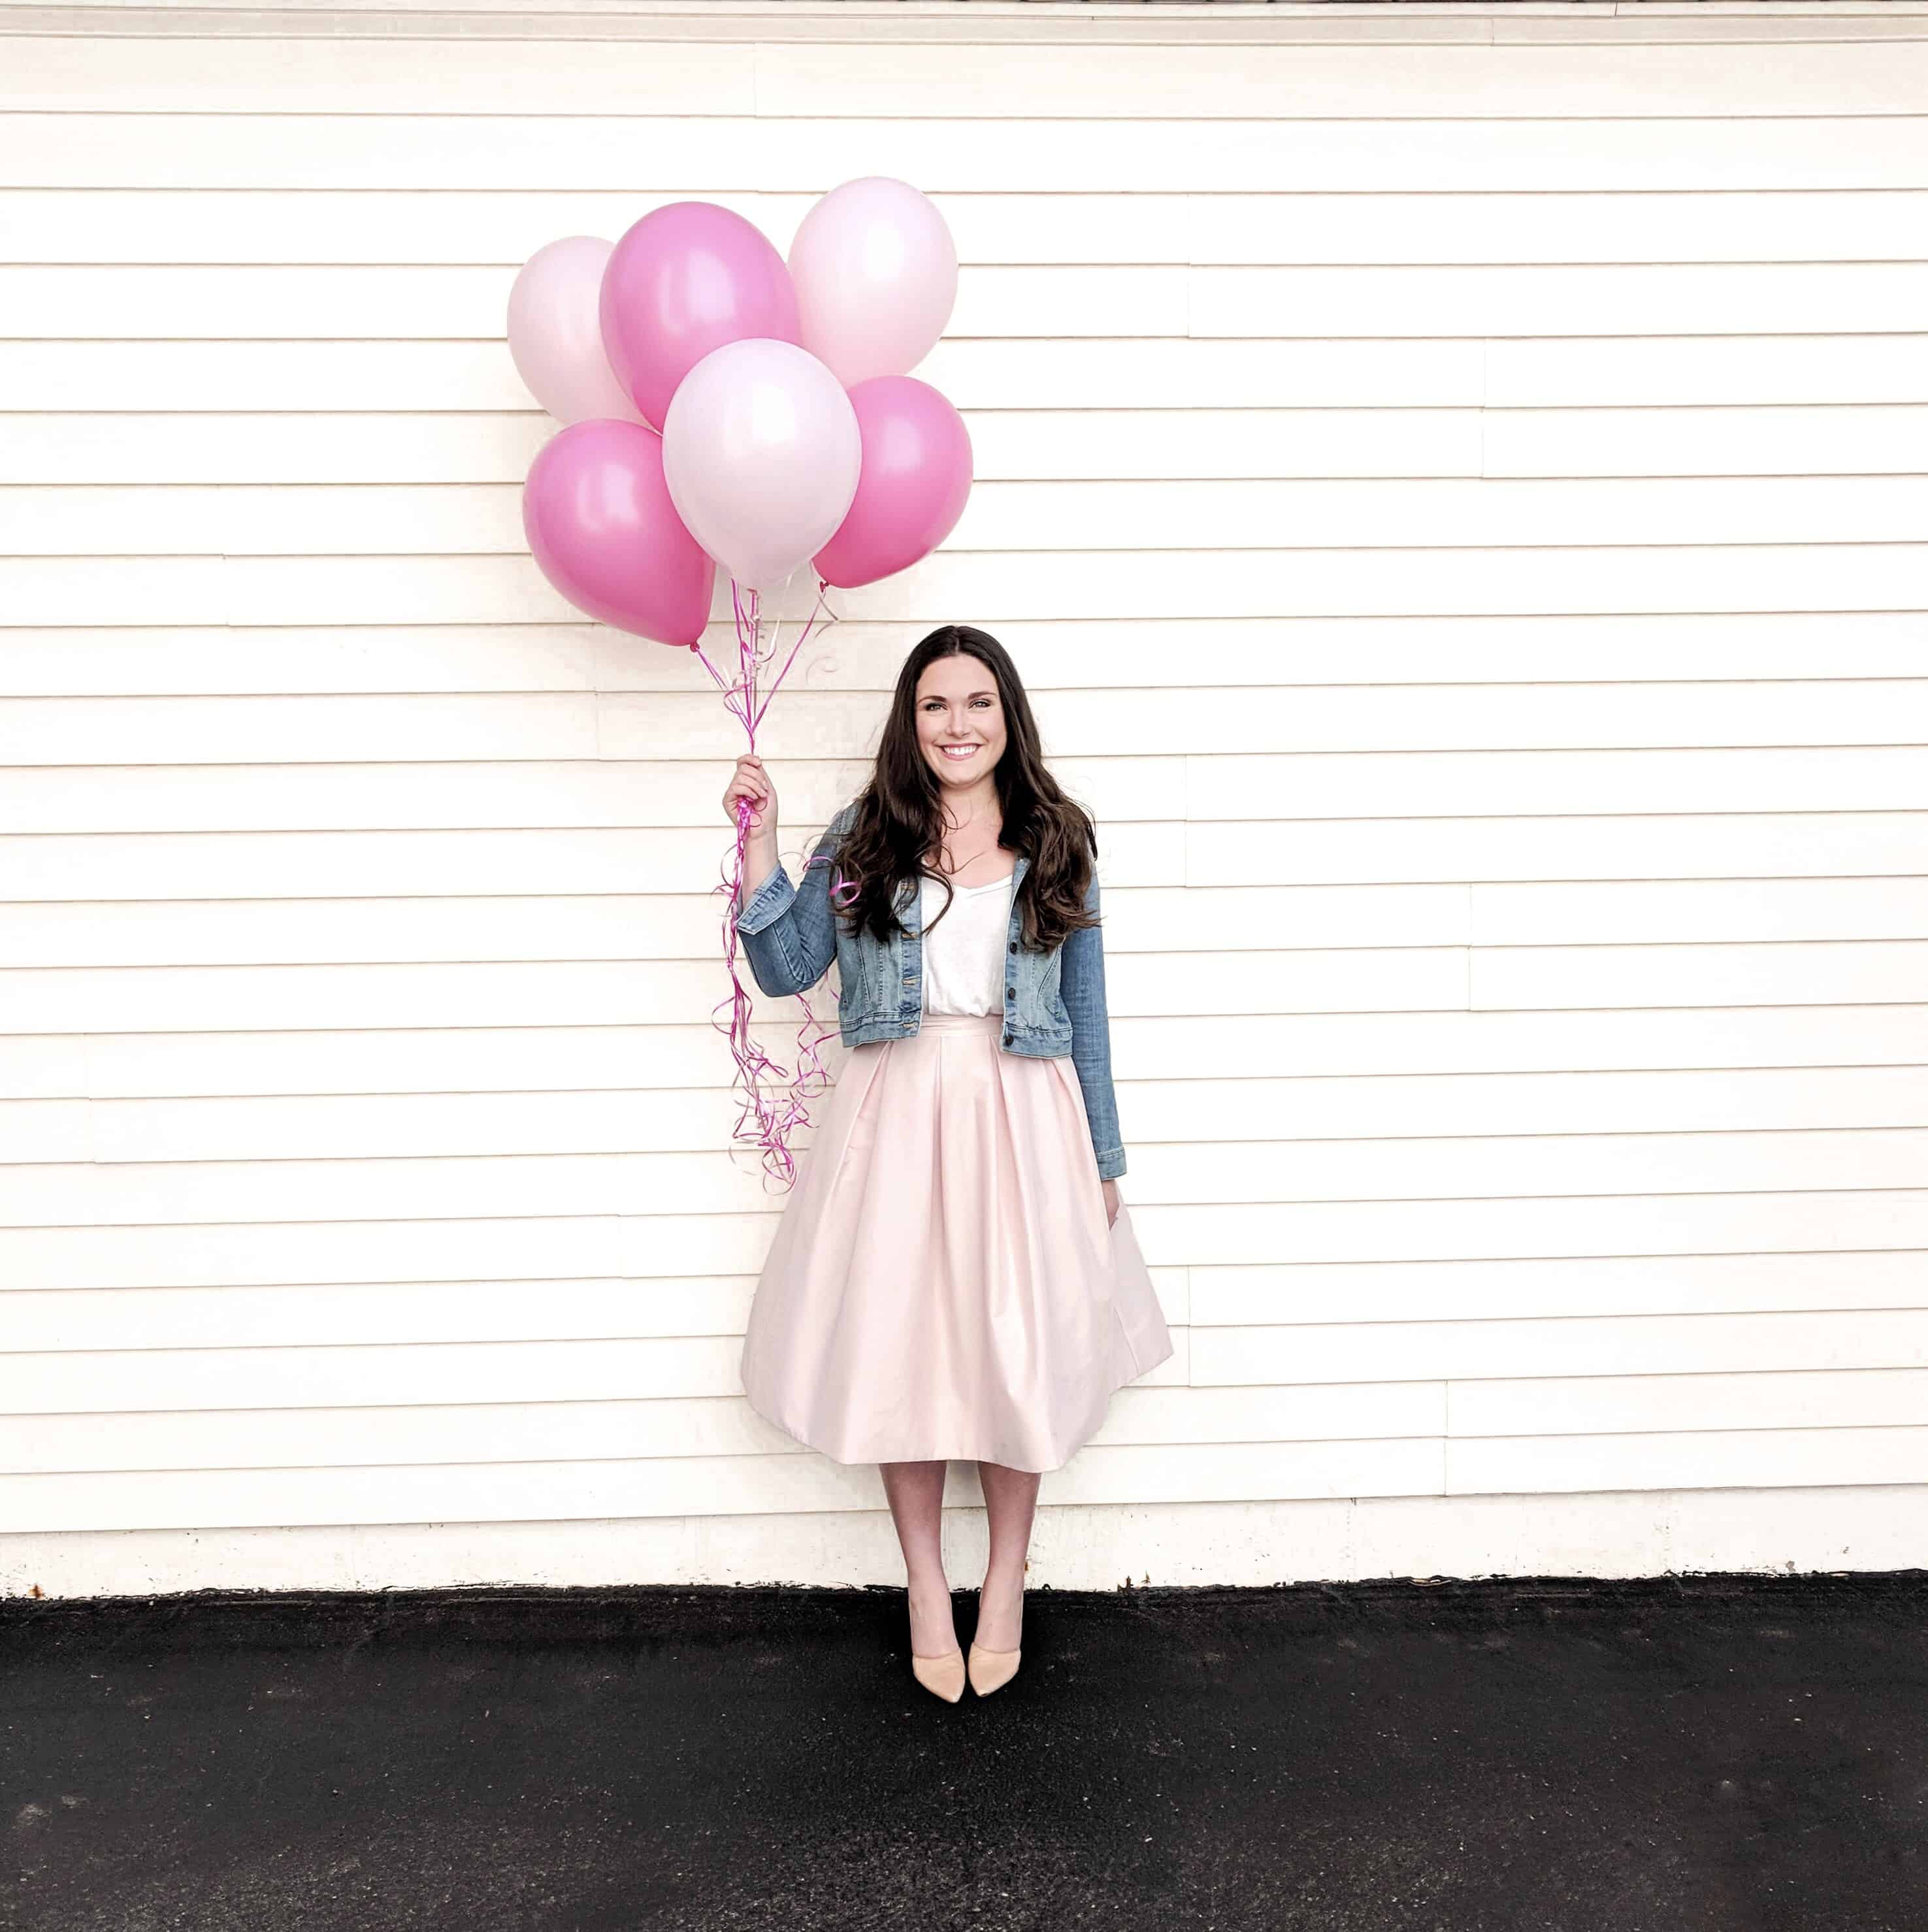 woman in pink skirt holding pink balloons